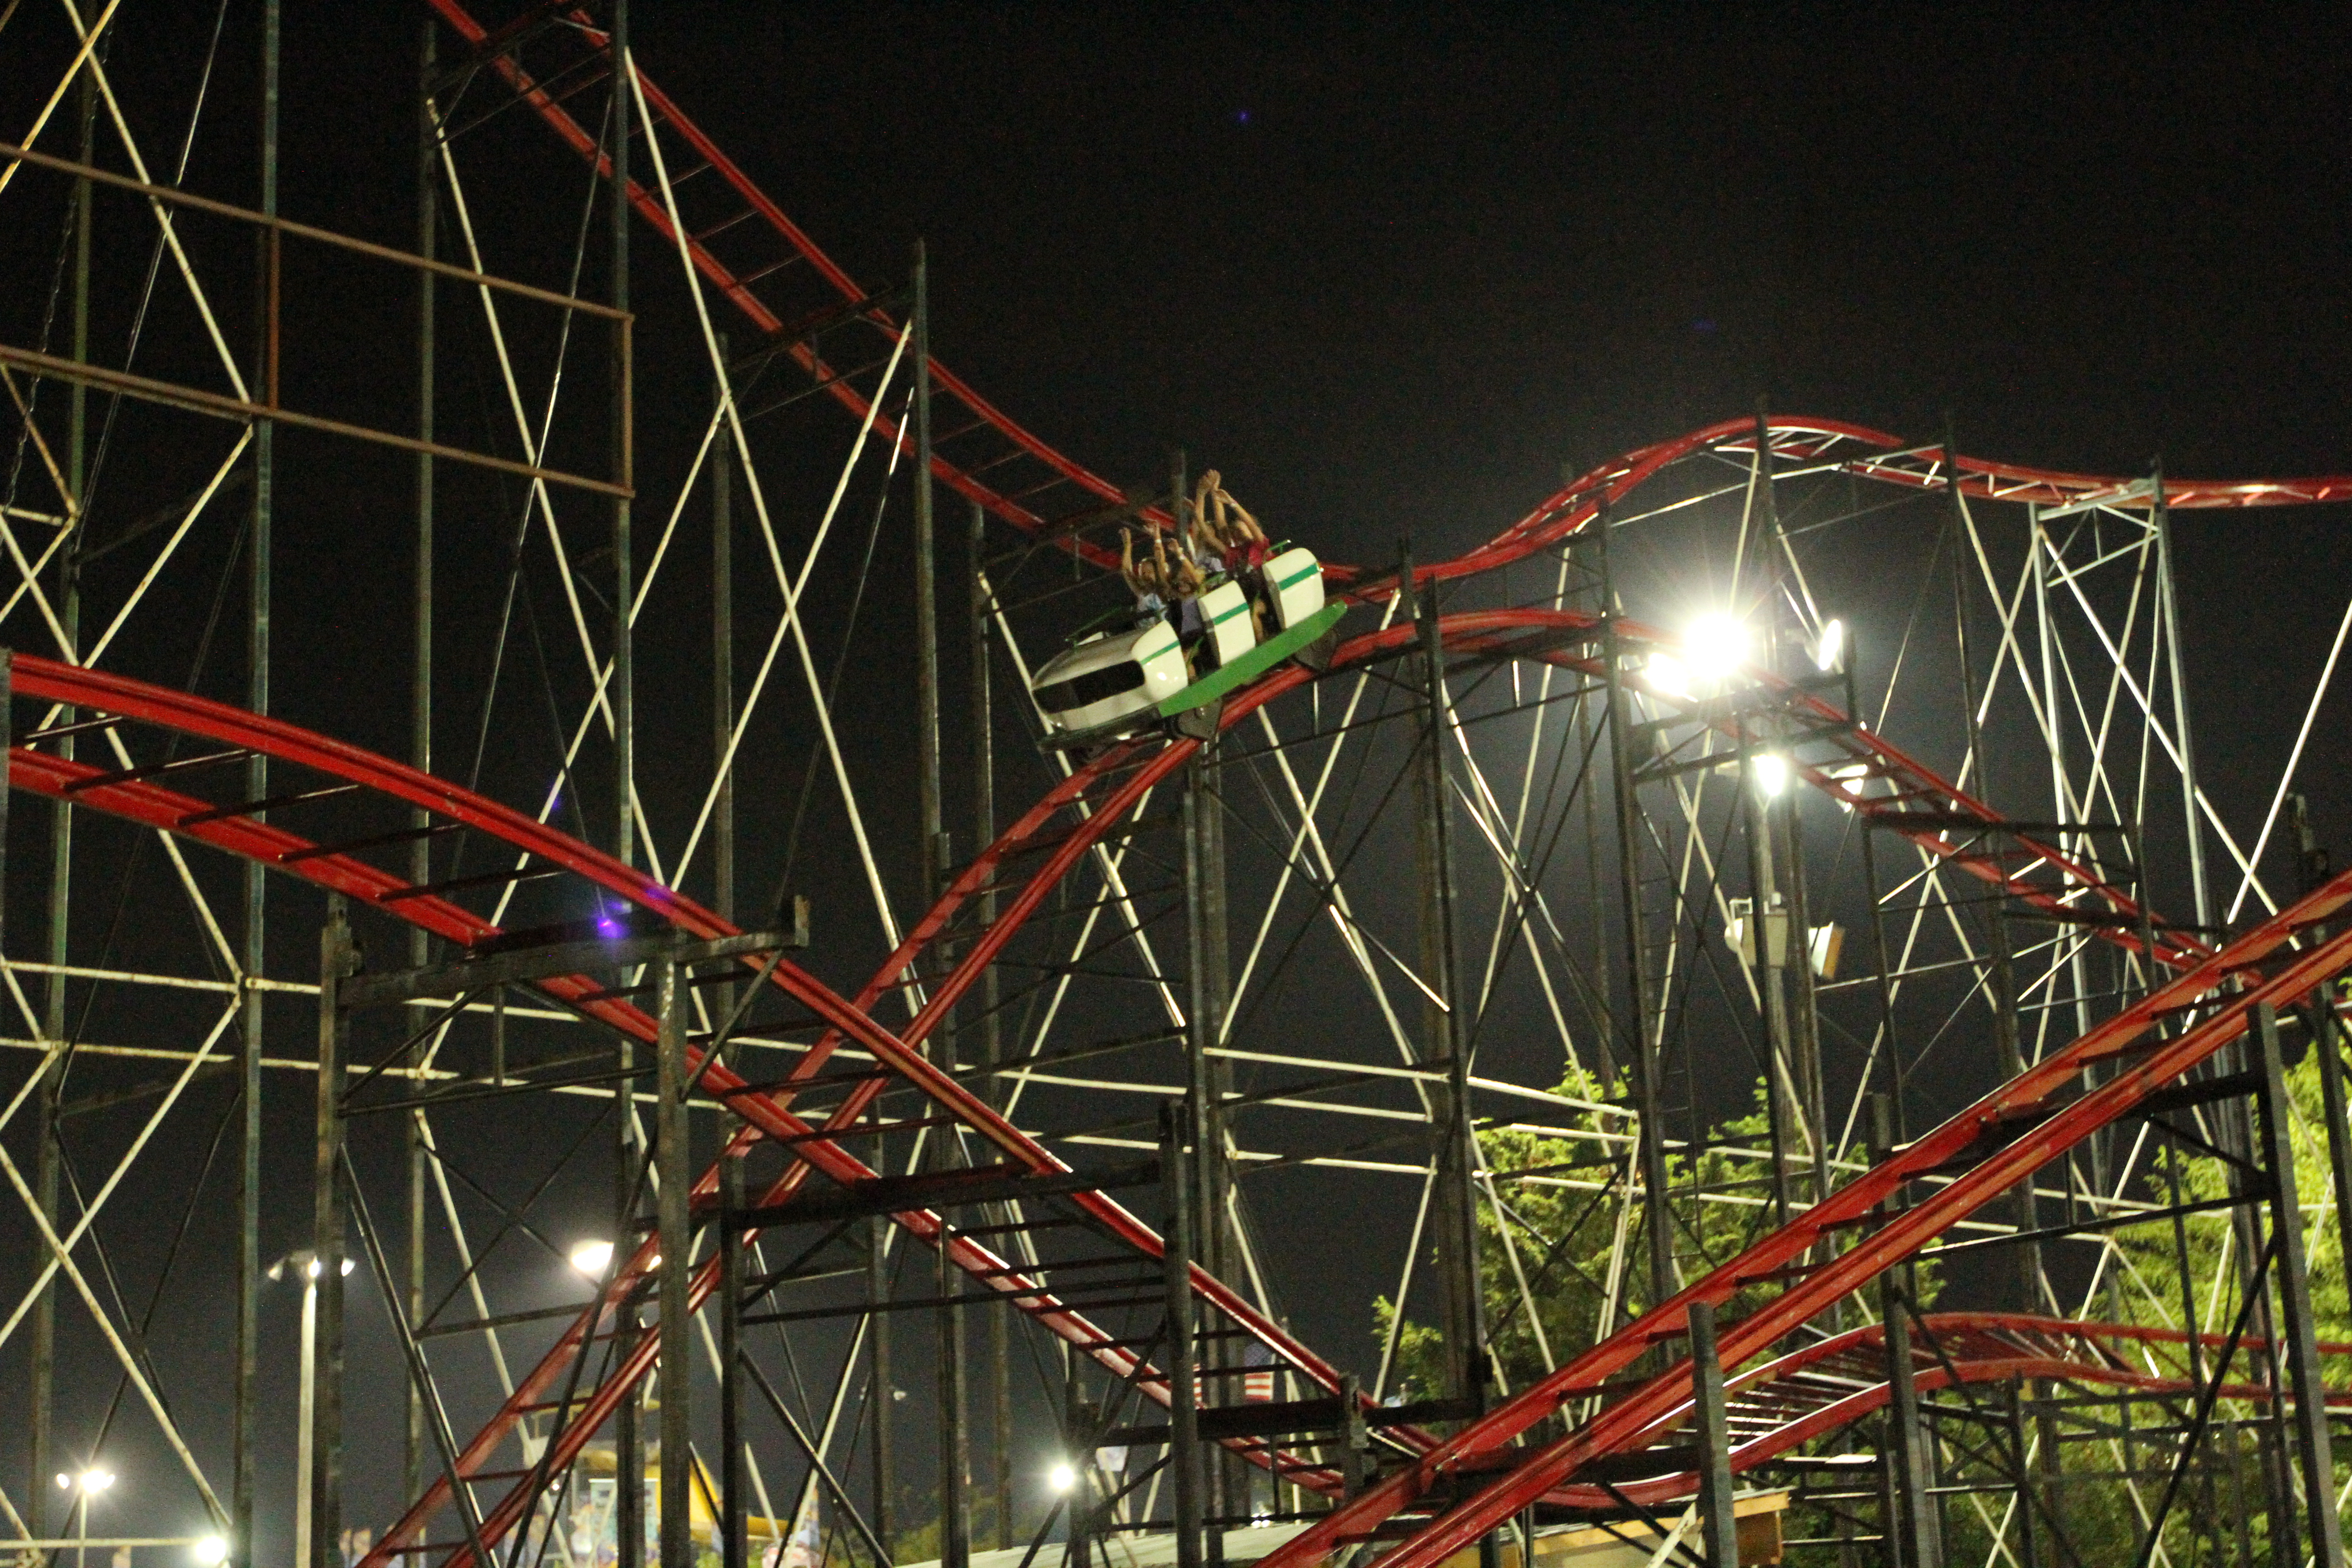 a red roller coaster at night